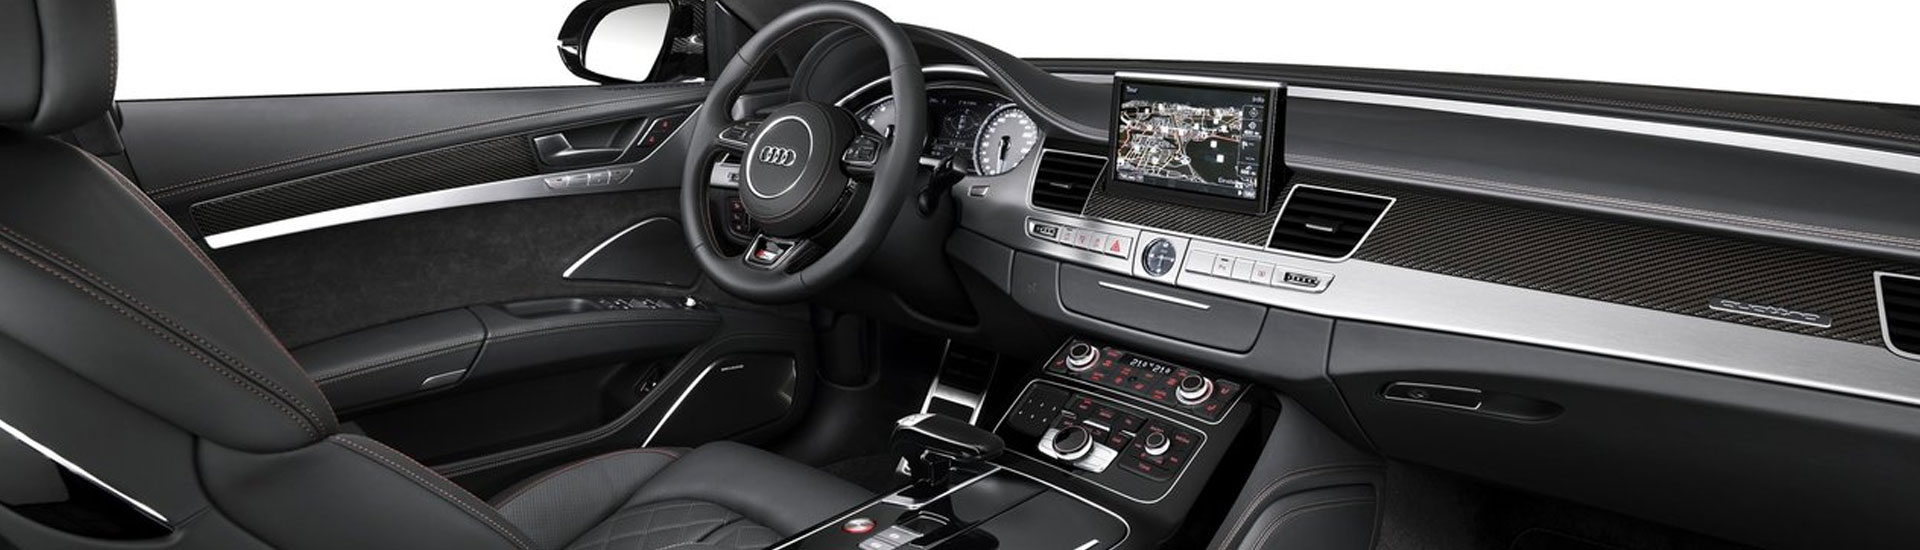 2015 Audi A6 Custom Dash Kits